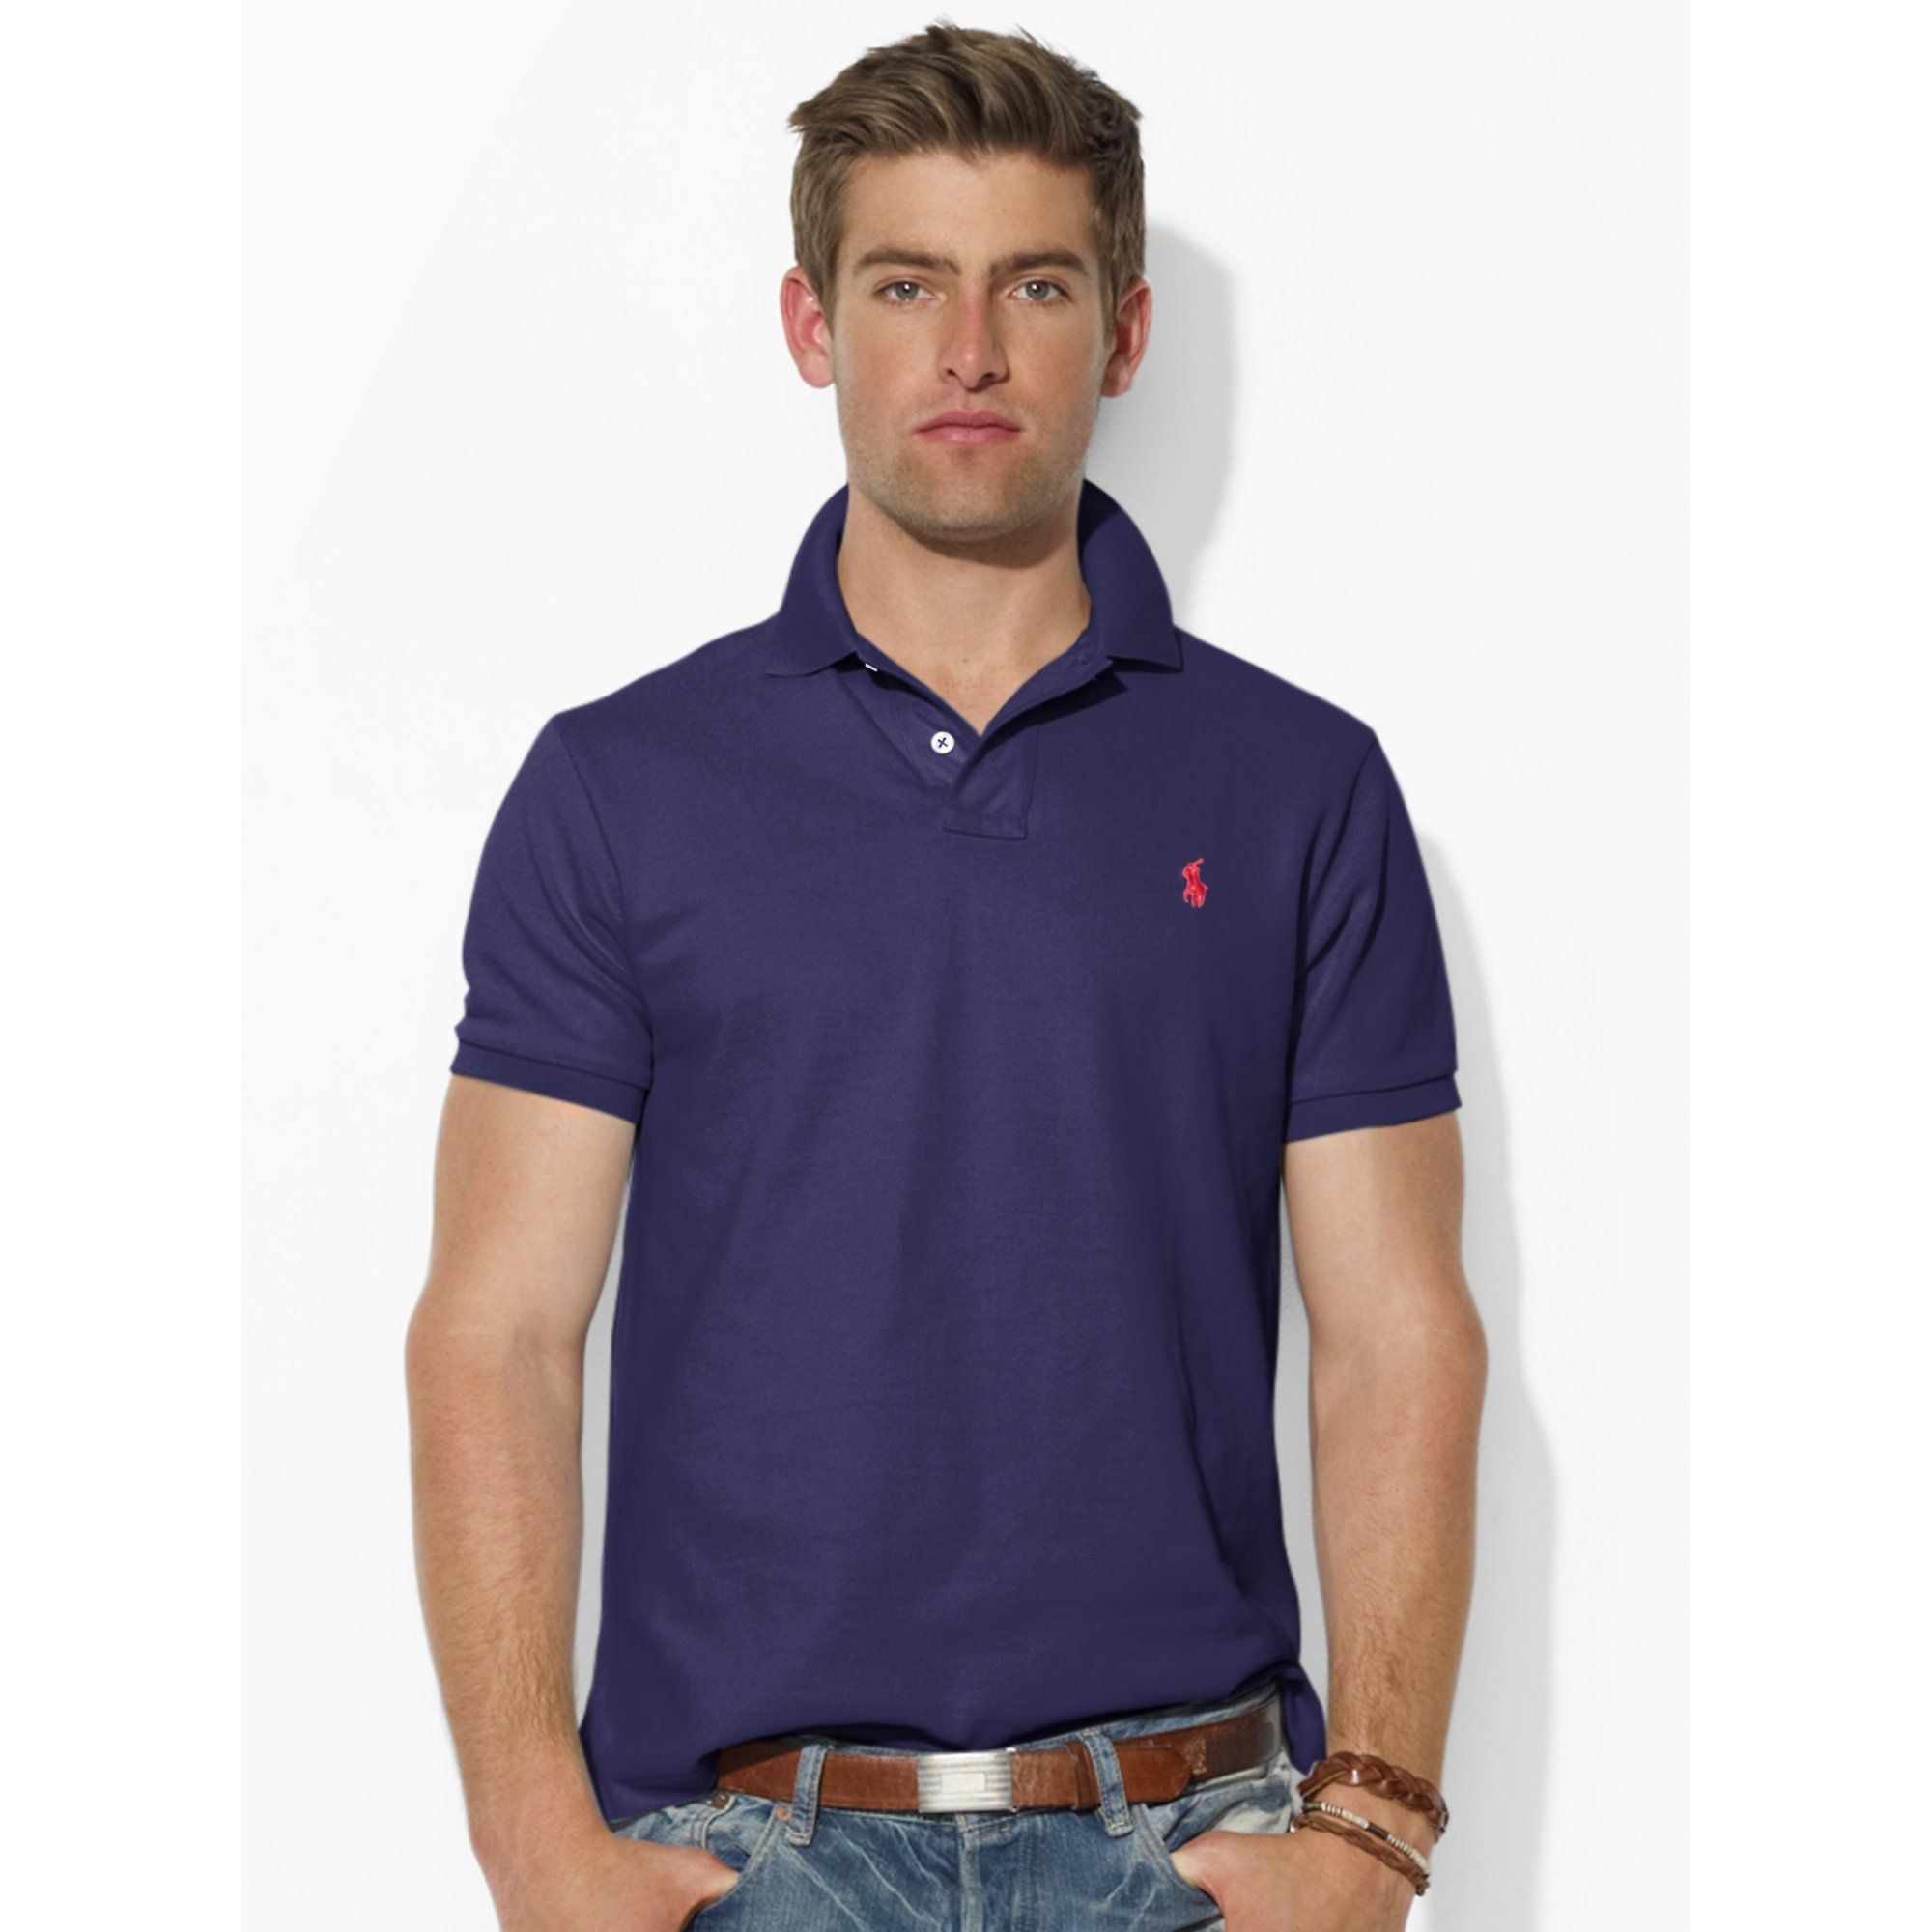 896369462 Polo Ralph Lauren Custom-fit Mesh Polo Shirt in Blue for Men - Lyst